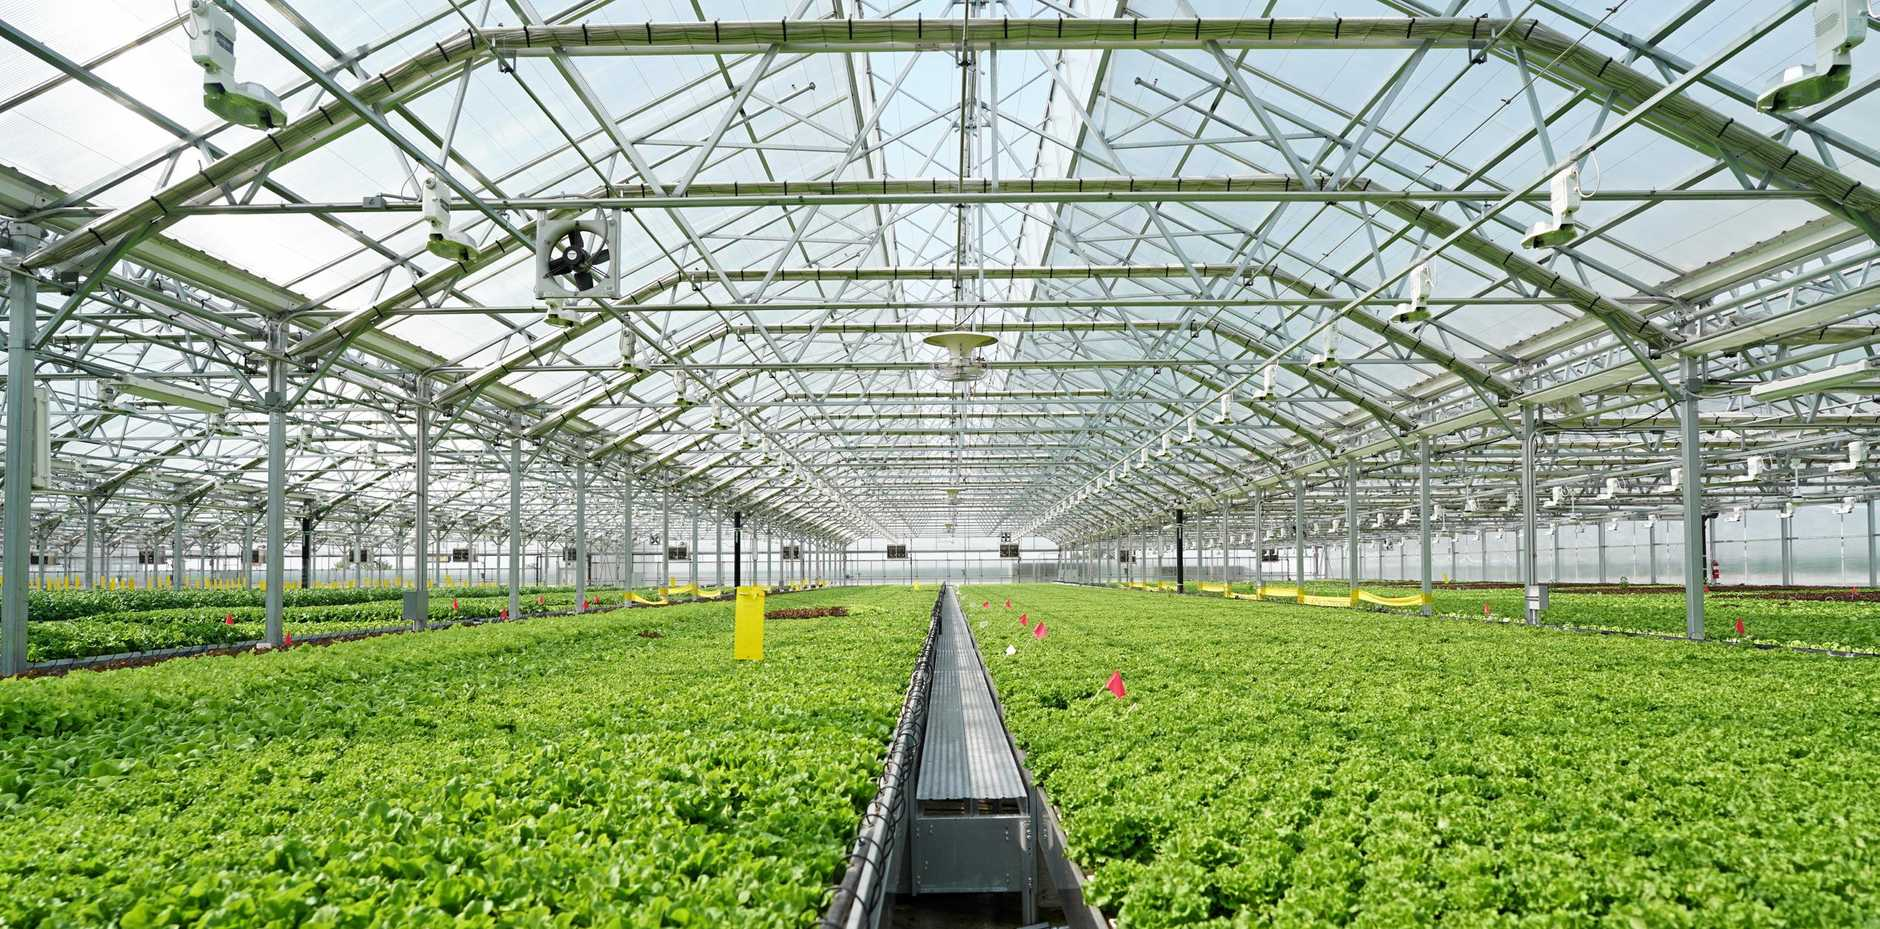 Gotham Greens' rooftop greenhouse in Pullman, Chicago, which is the largest in the world.